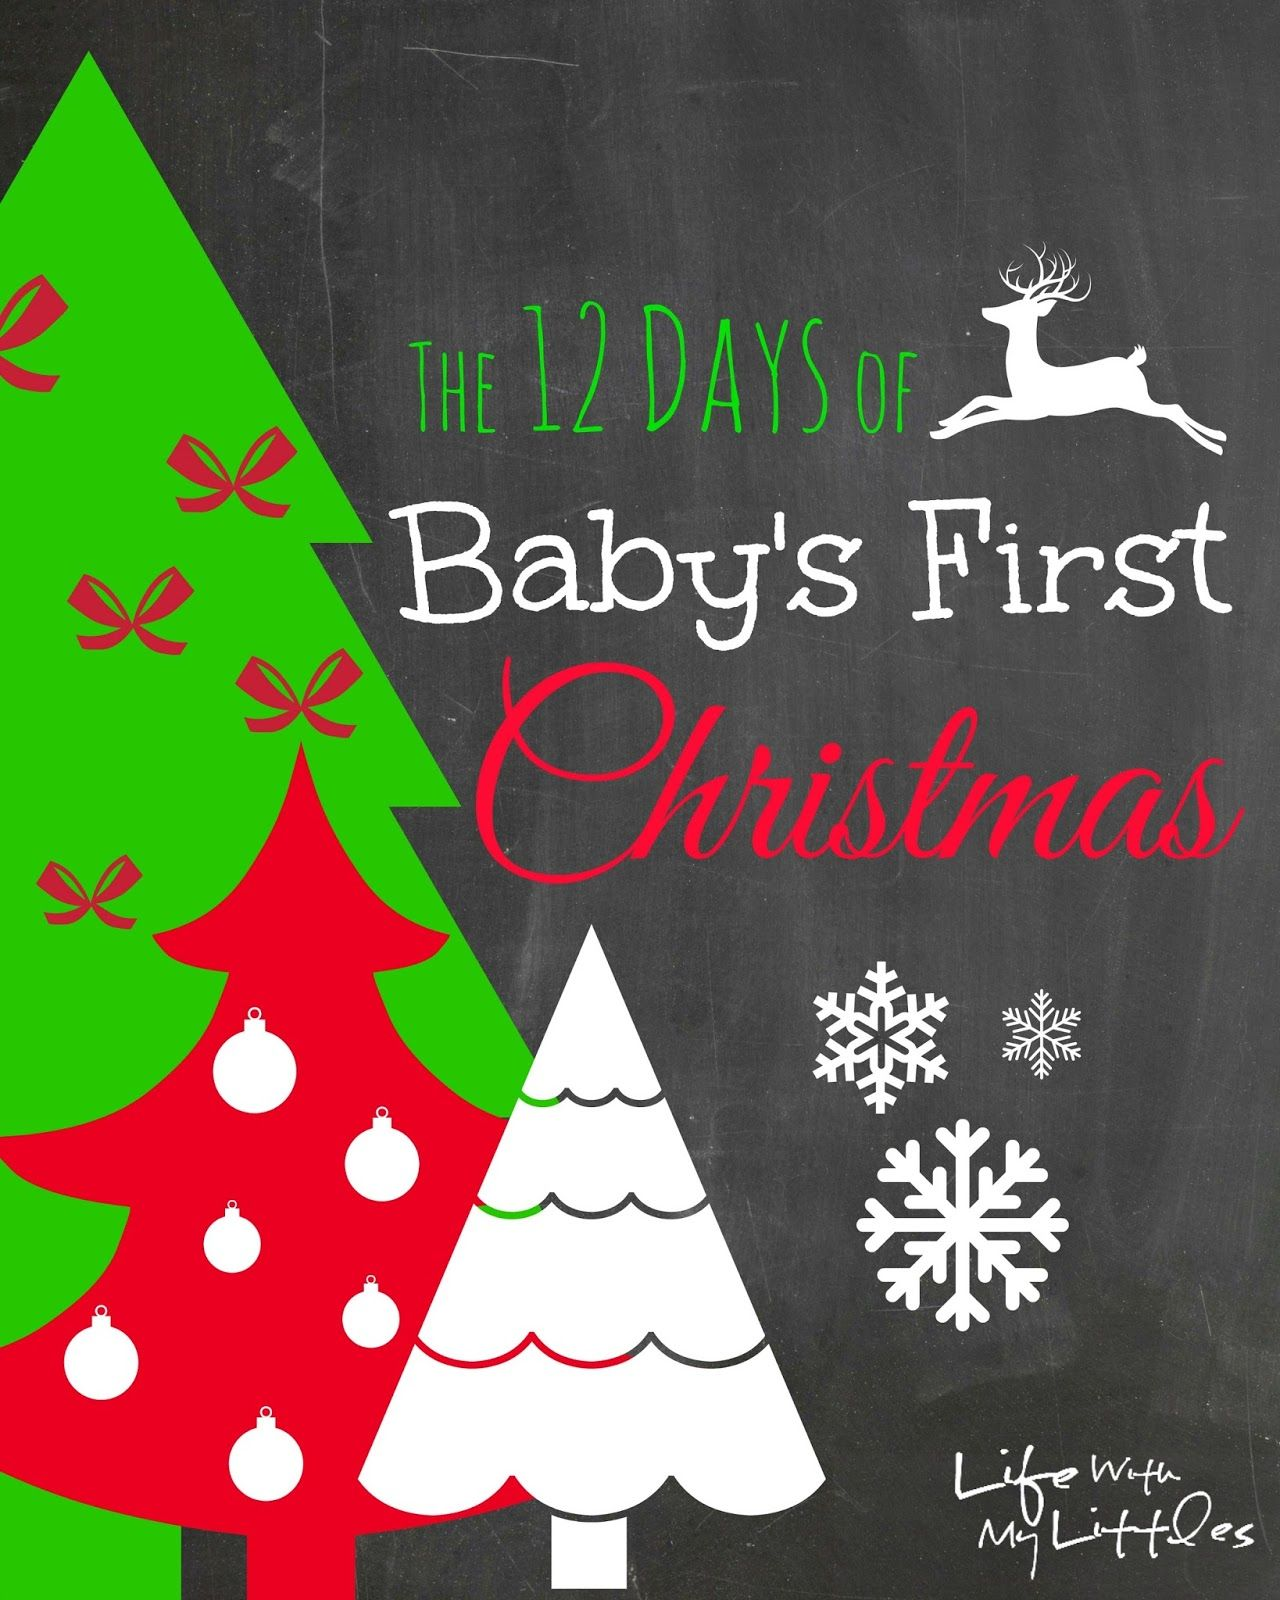 The 12 Days Of Babys First Christmas